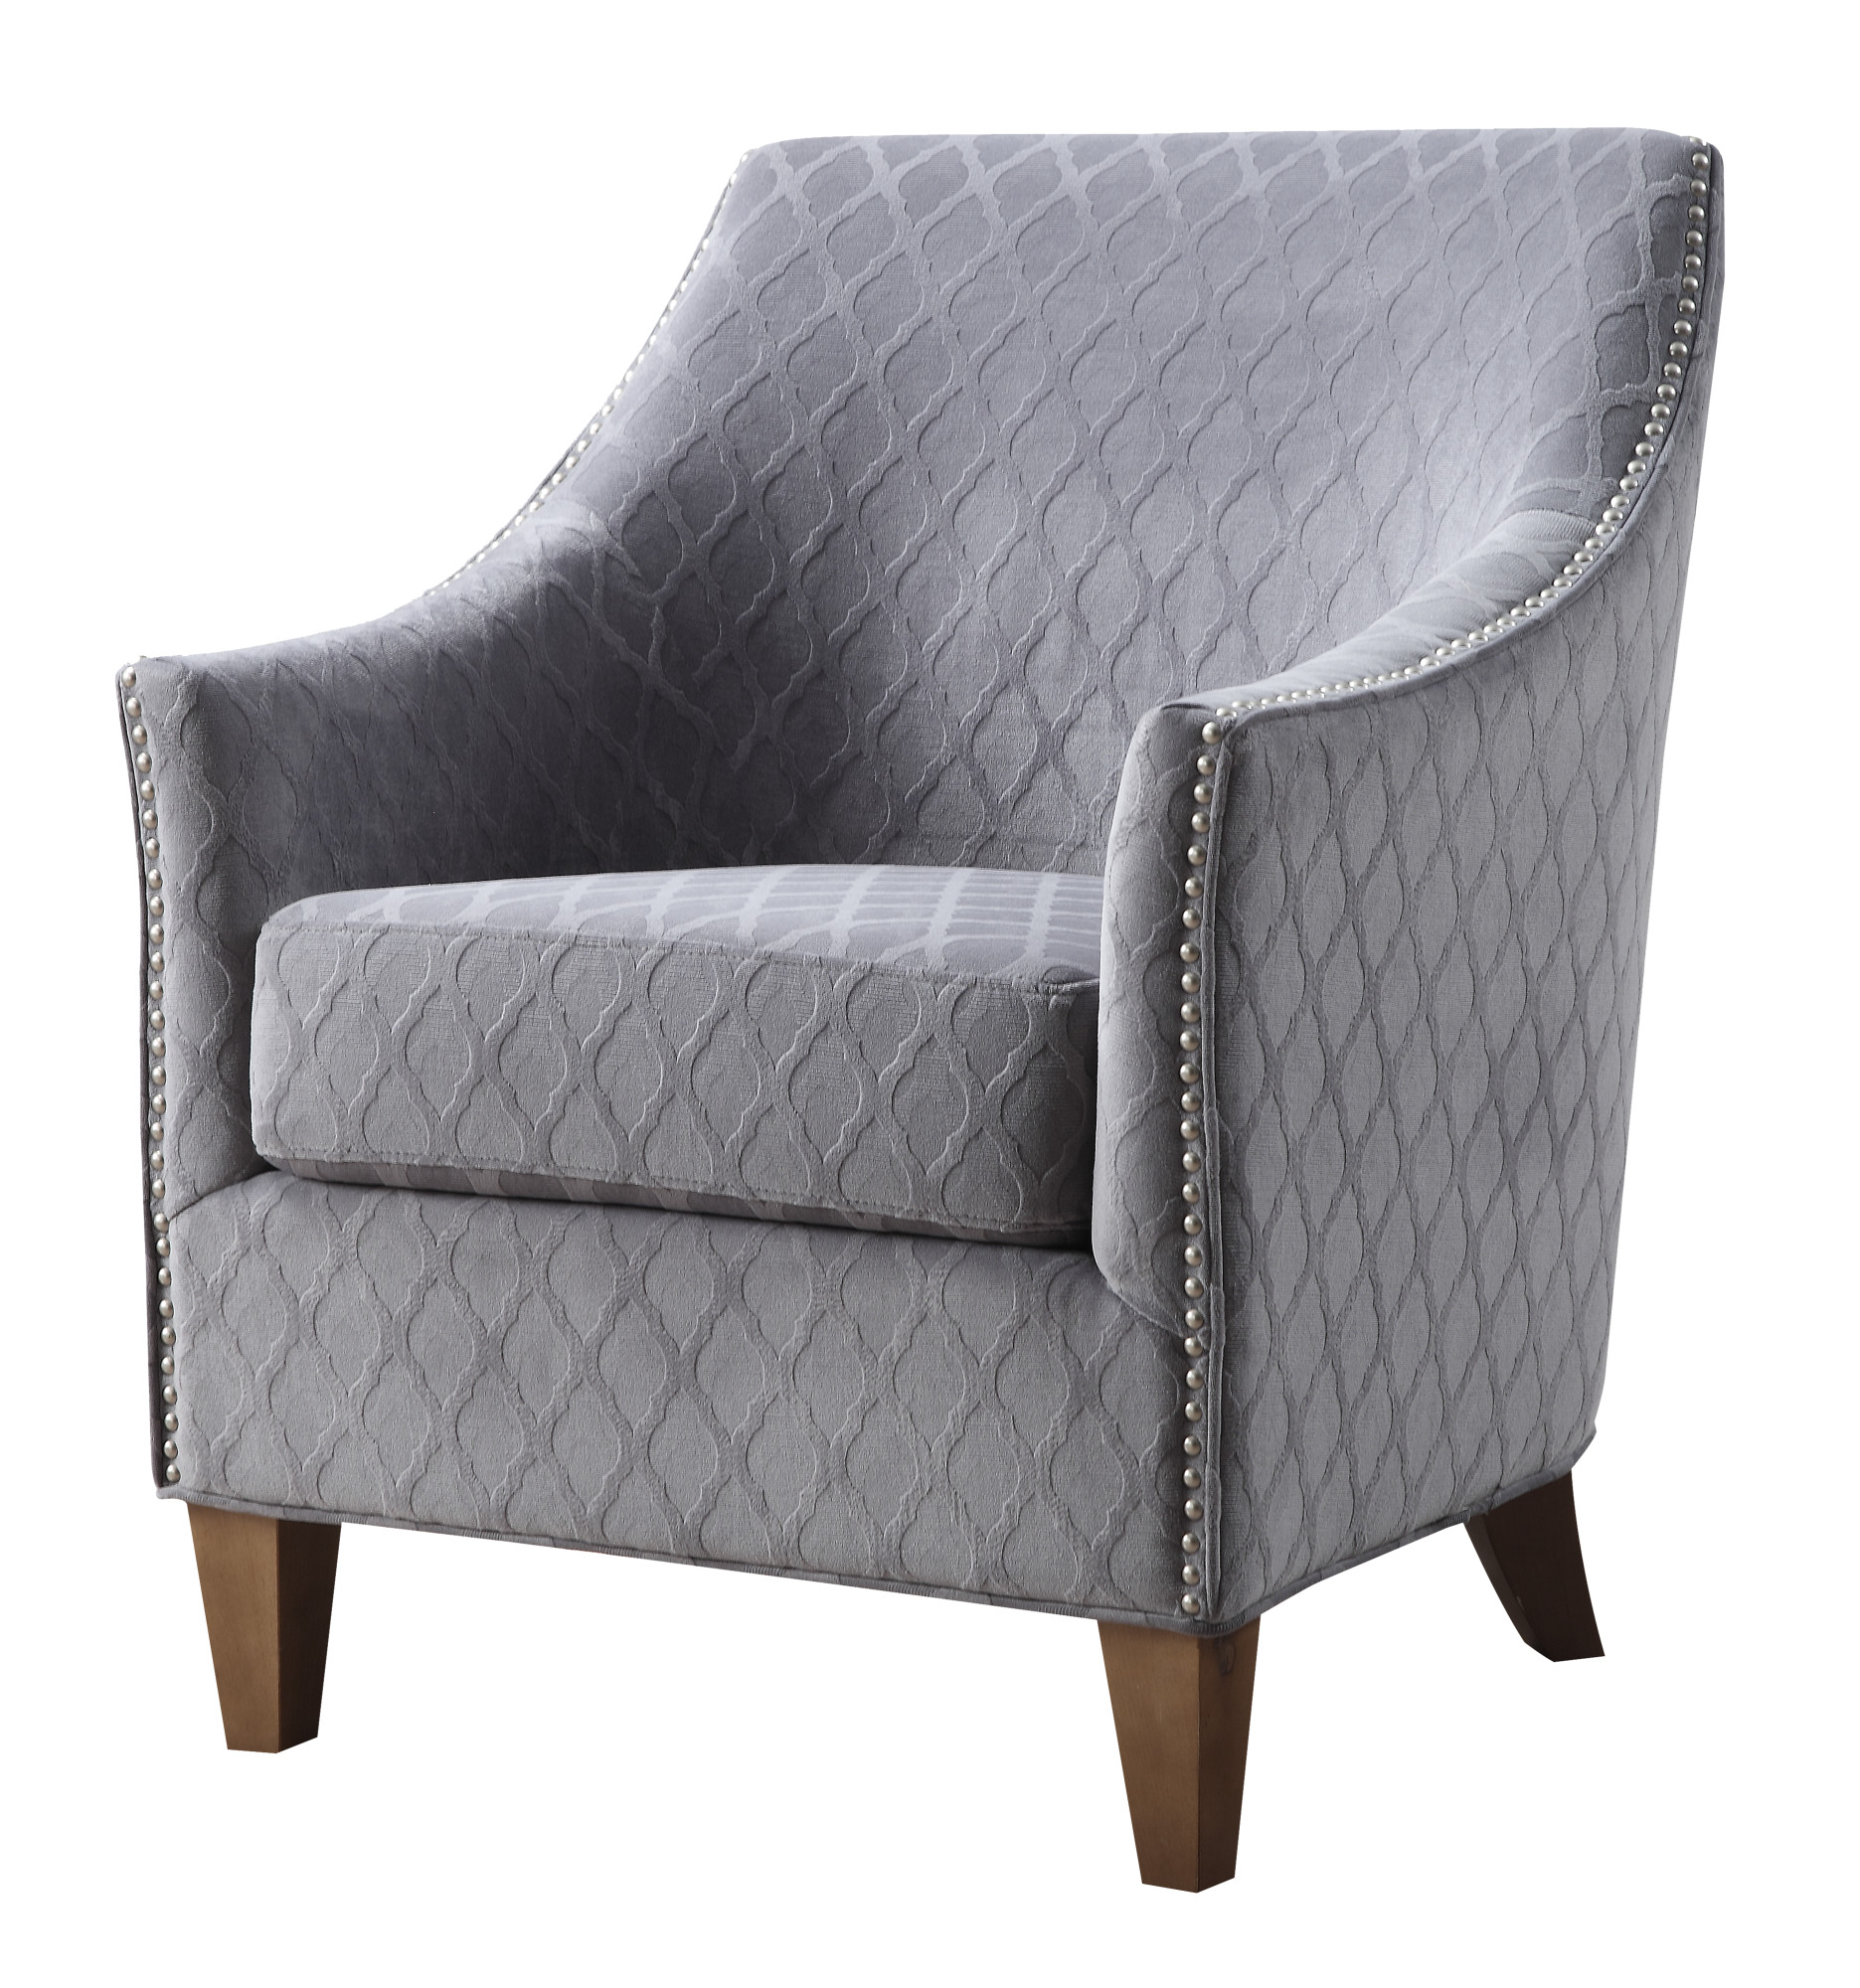 Emerald Home Kismet Wembley Graphite Accent Chair with Diamond Pattern Fabric And Nailhead Trim